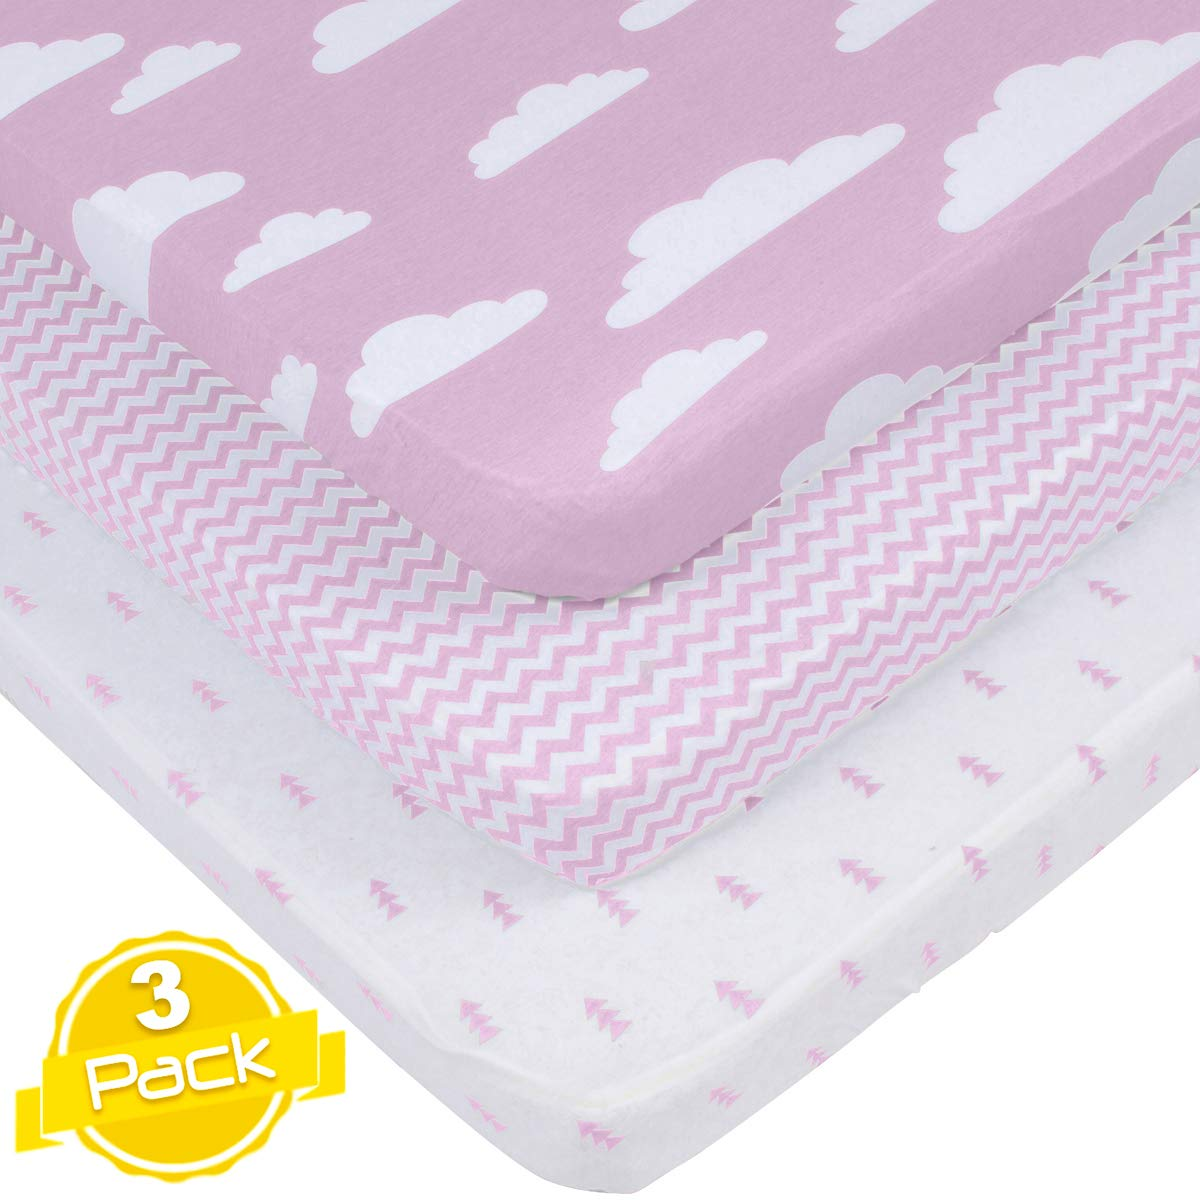 Pack n Play Playard Sheets Set   3 Pack   100% Super Soft Jersey Knit Cotton (150 GSM)   Portable Mini Crib Mattress Fitted Sheet for Boys & Girls by BaeBae Goods